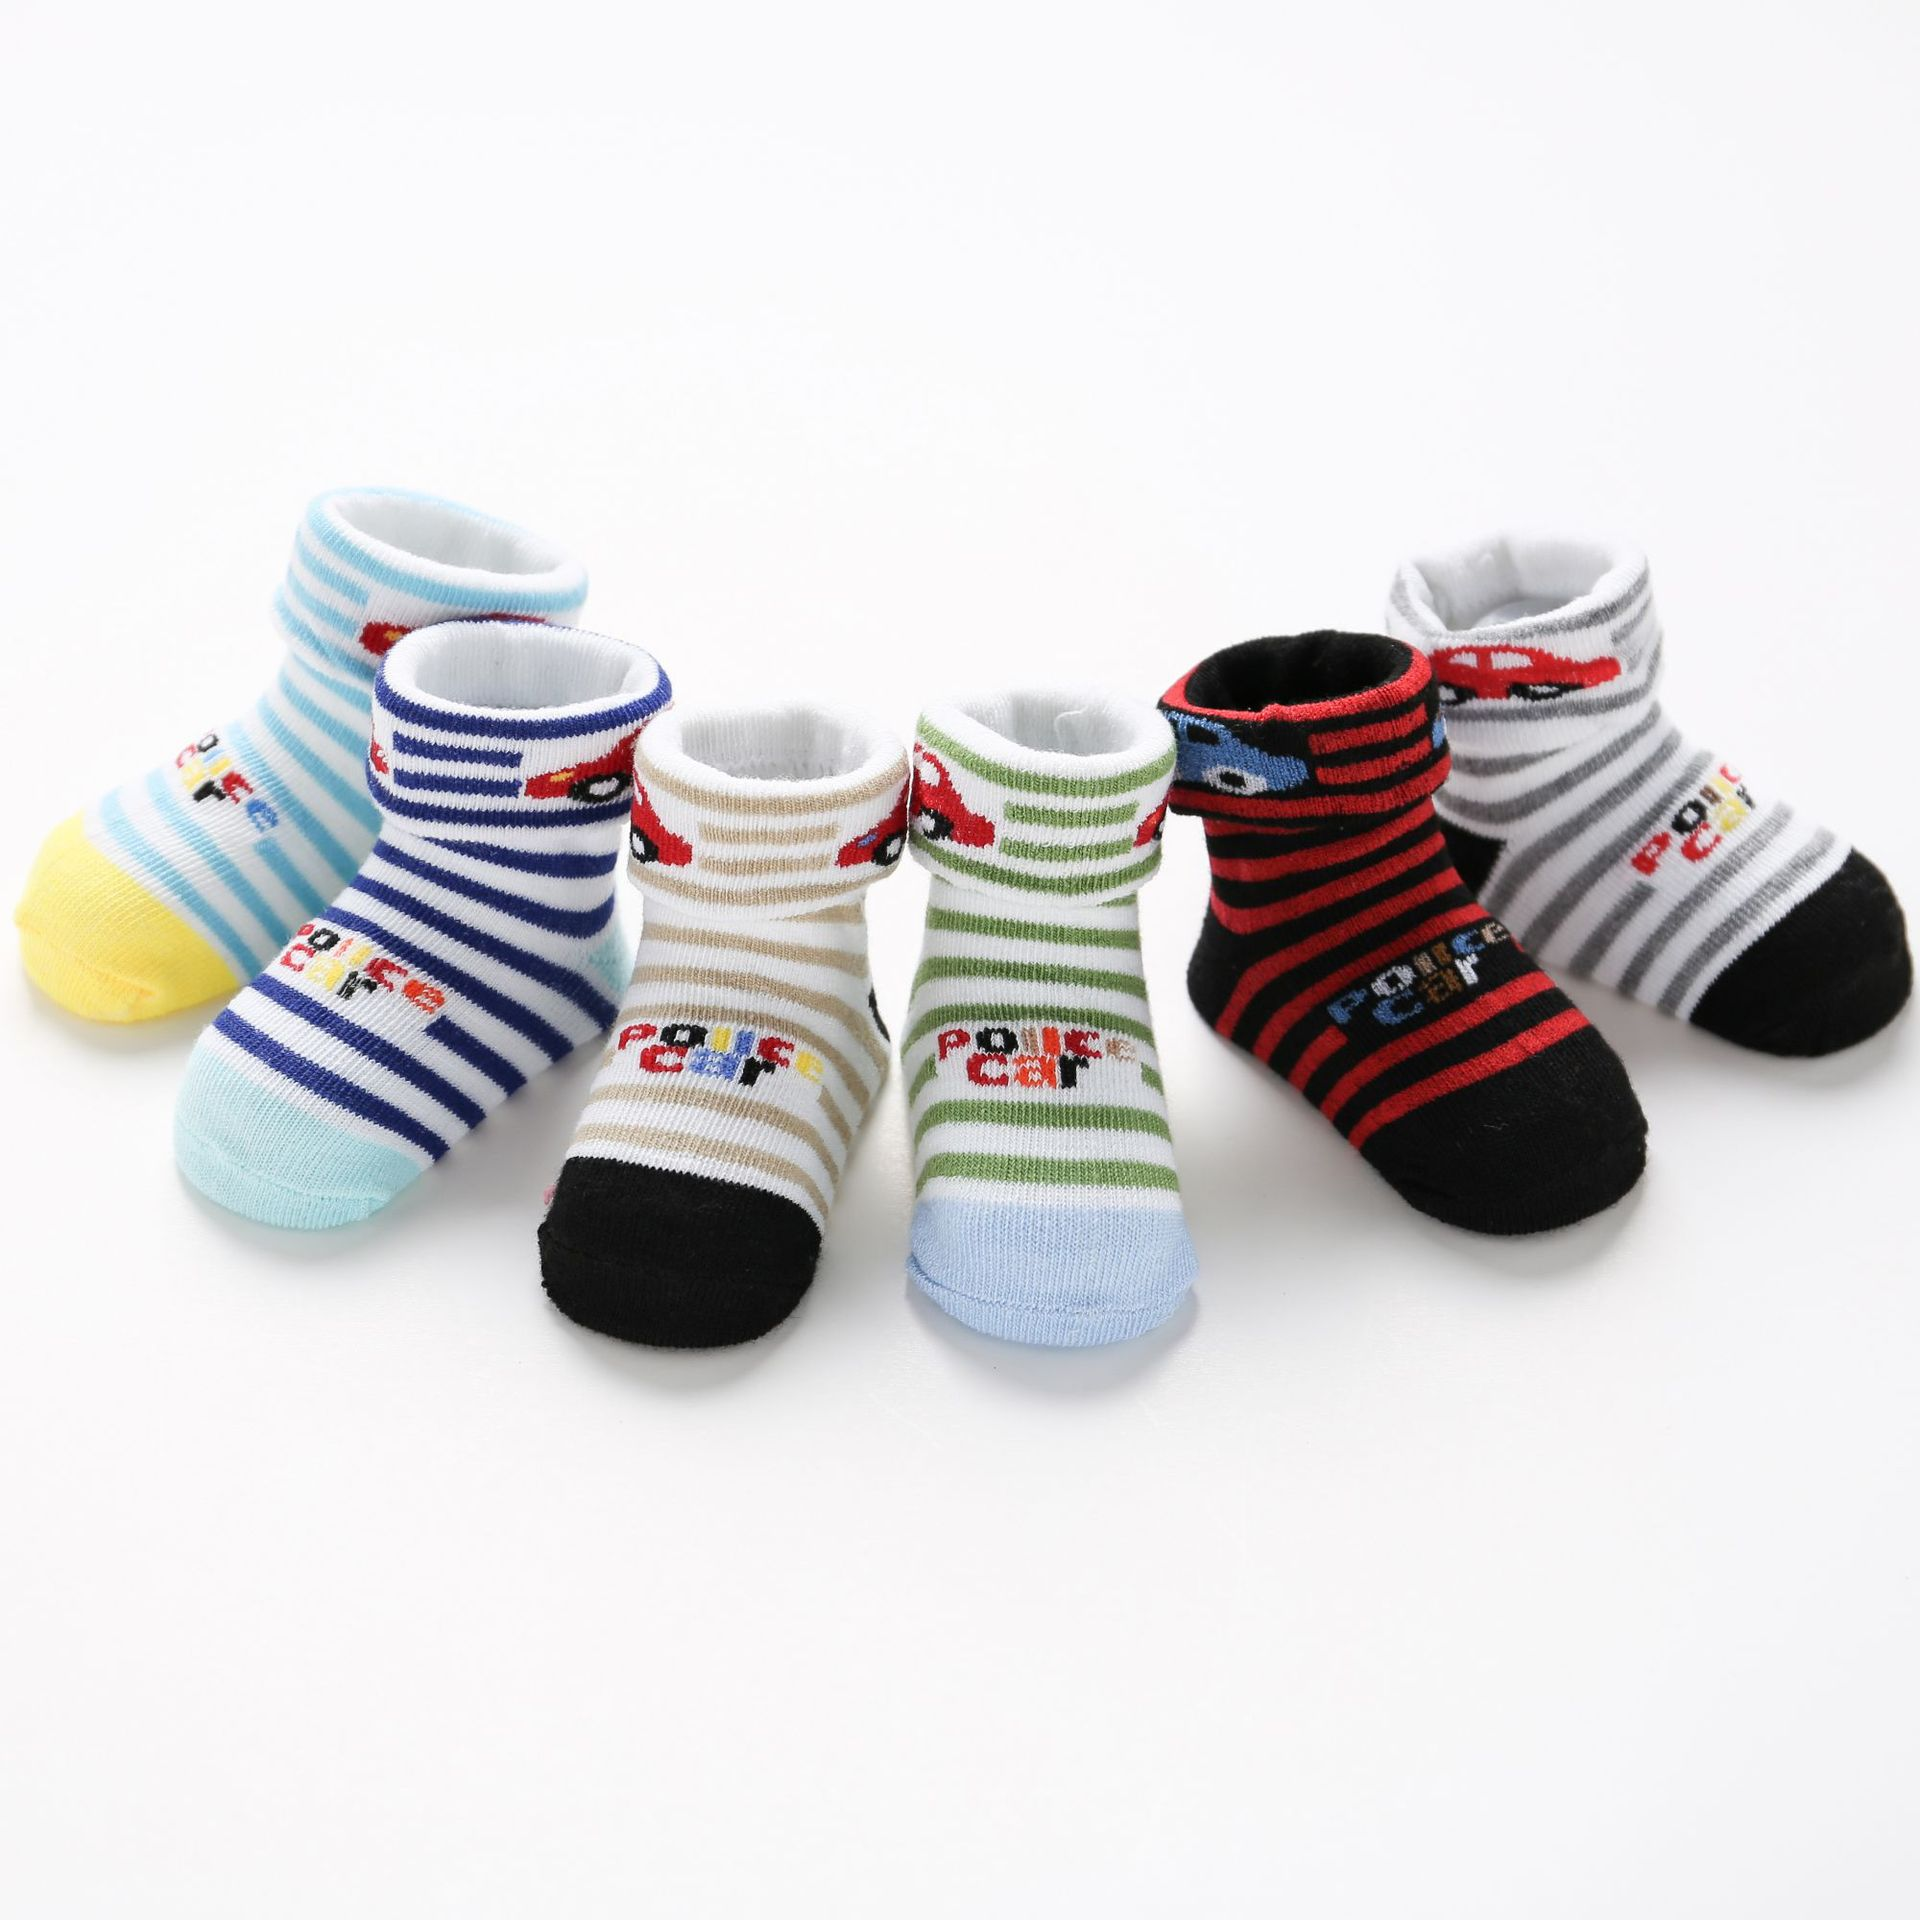 6Pair/lot Cotton Baby Socks For Boys Girls Cartoon Car Stripe Medias Para Bebe Soft Stretch Toddler Sock Set For 0-1Y